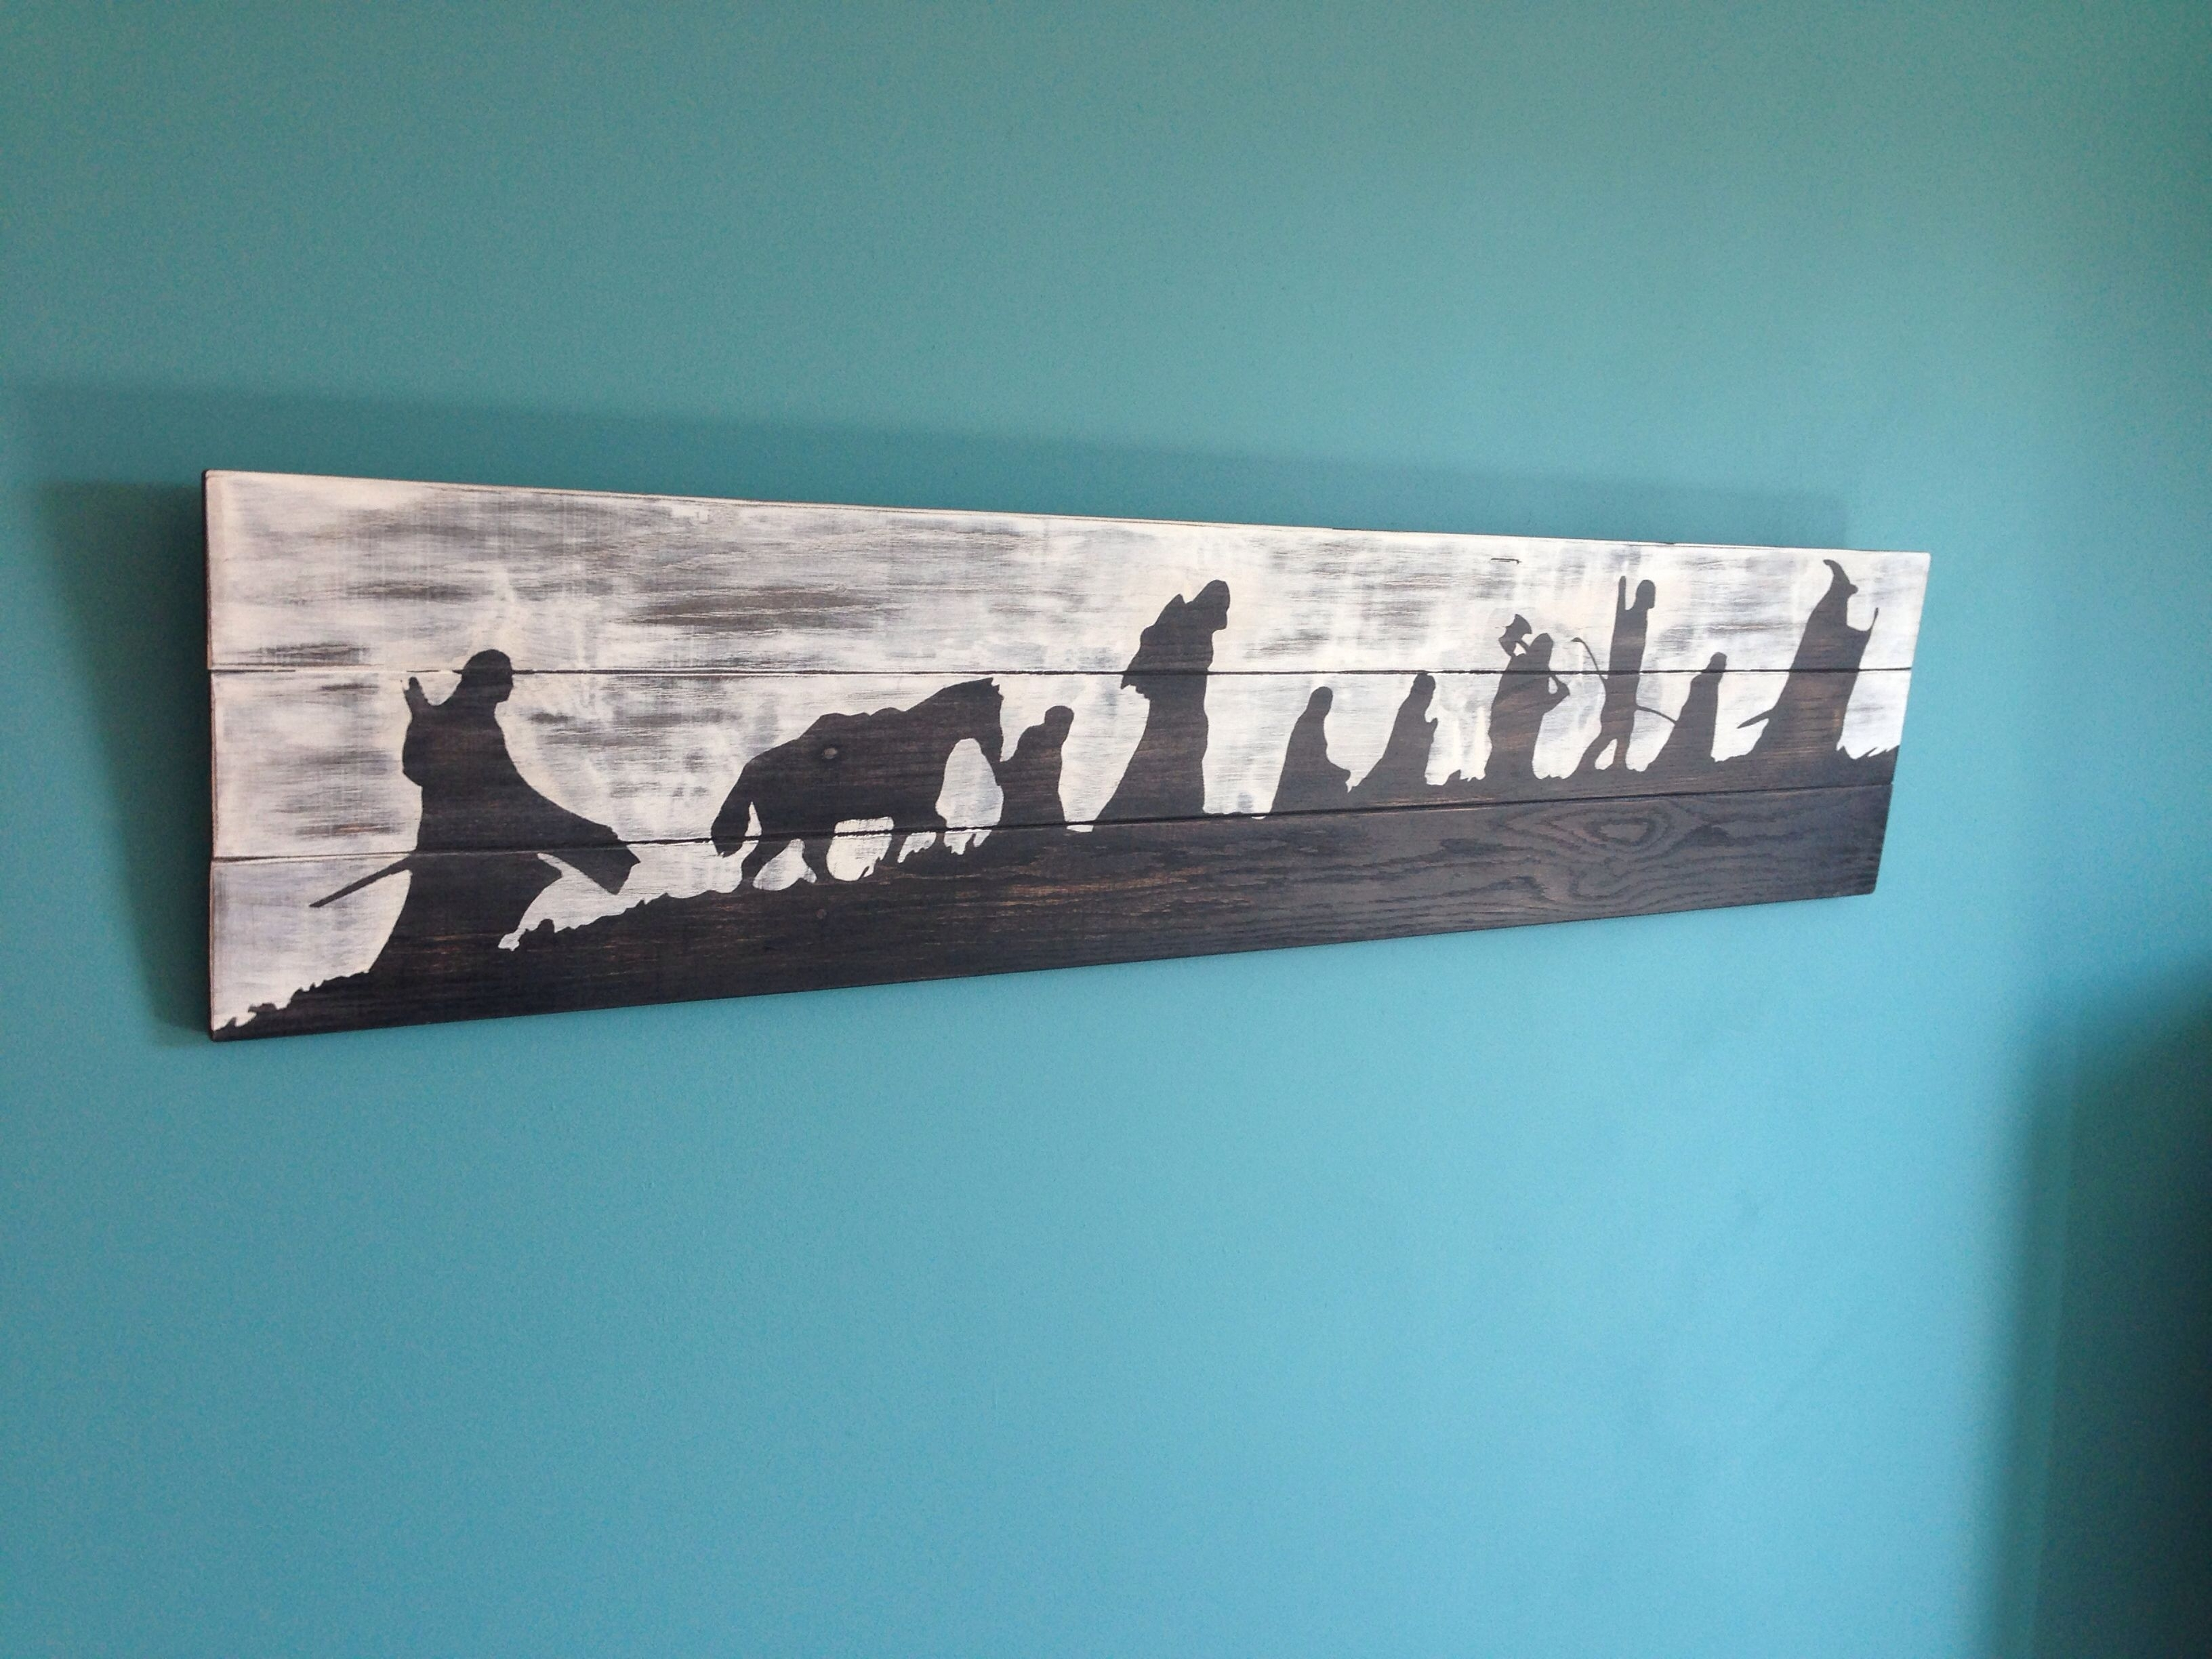 Lord Of The Rings Wall Art | Diy And My House | Pinterest | Lord With Regard To Latest Lord Of The Rings Wall Art (View 3 of 20)